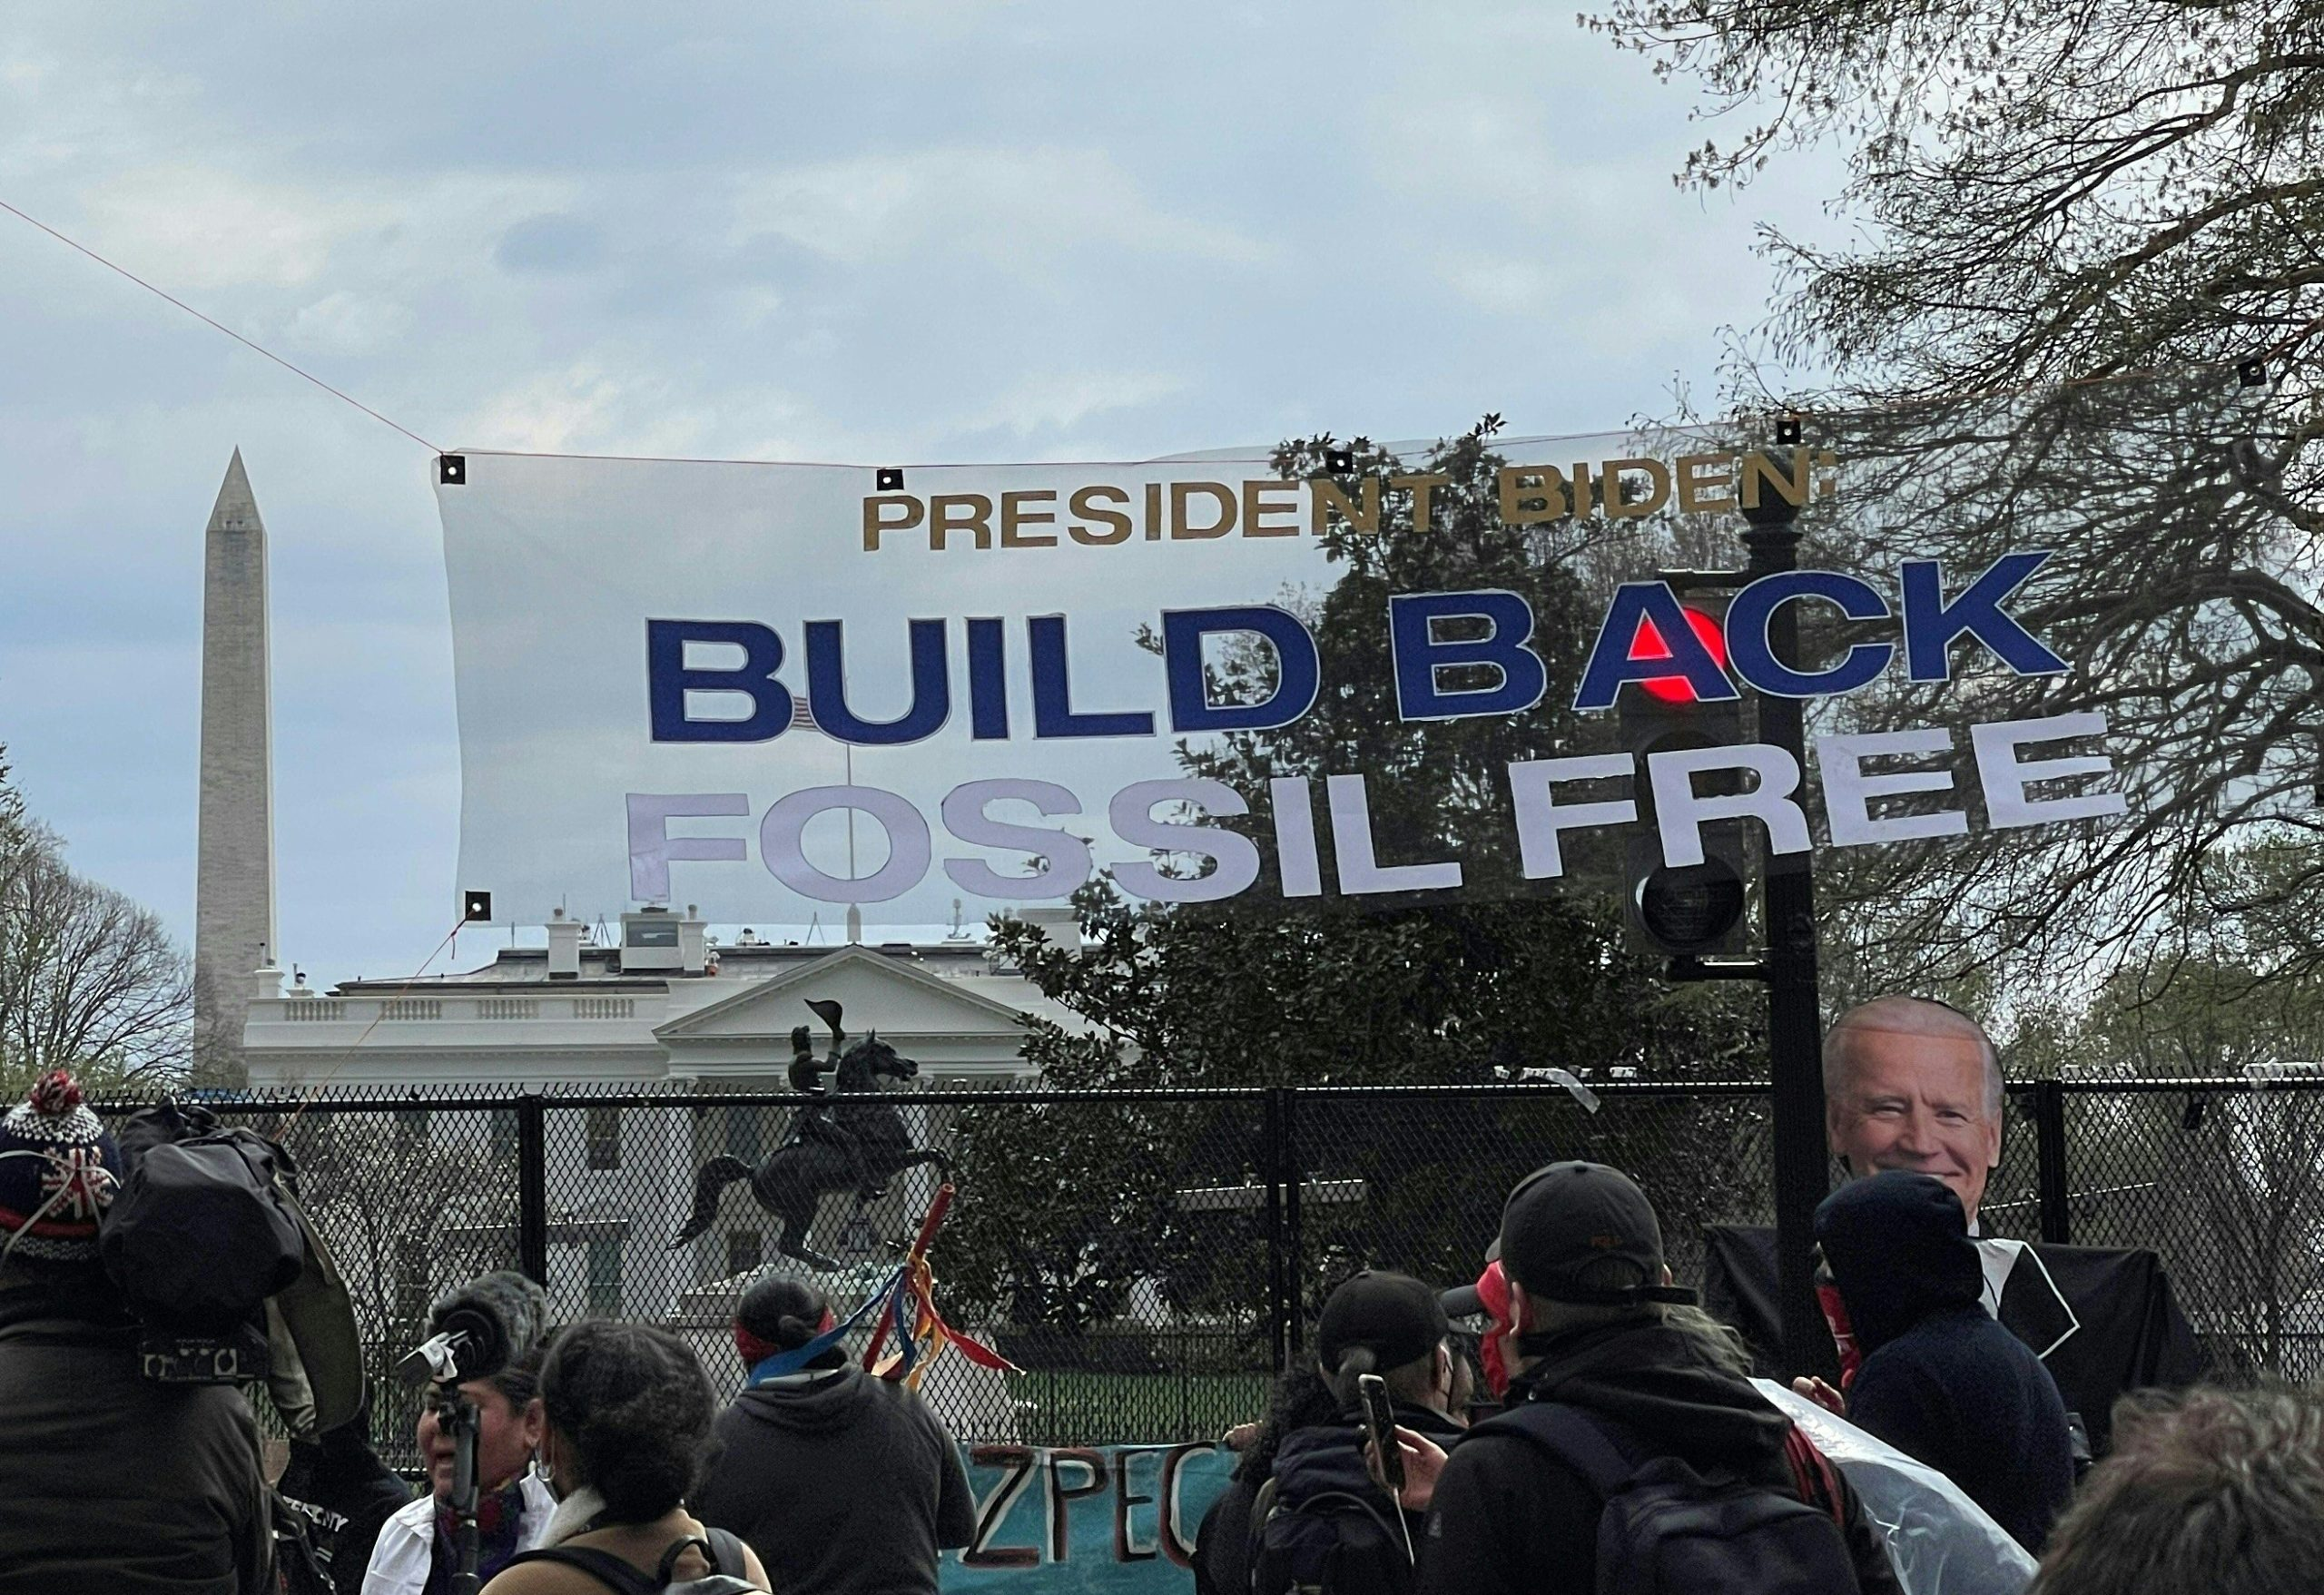 Activists display banners in support of shutting down existing oil pipelines in the U.S. on April 1 in Washington D.C. (Daniel Slim/AFP via Getty Images)